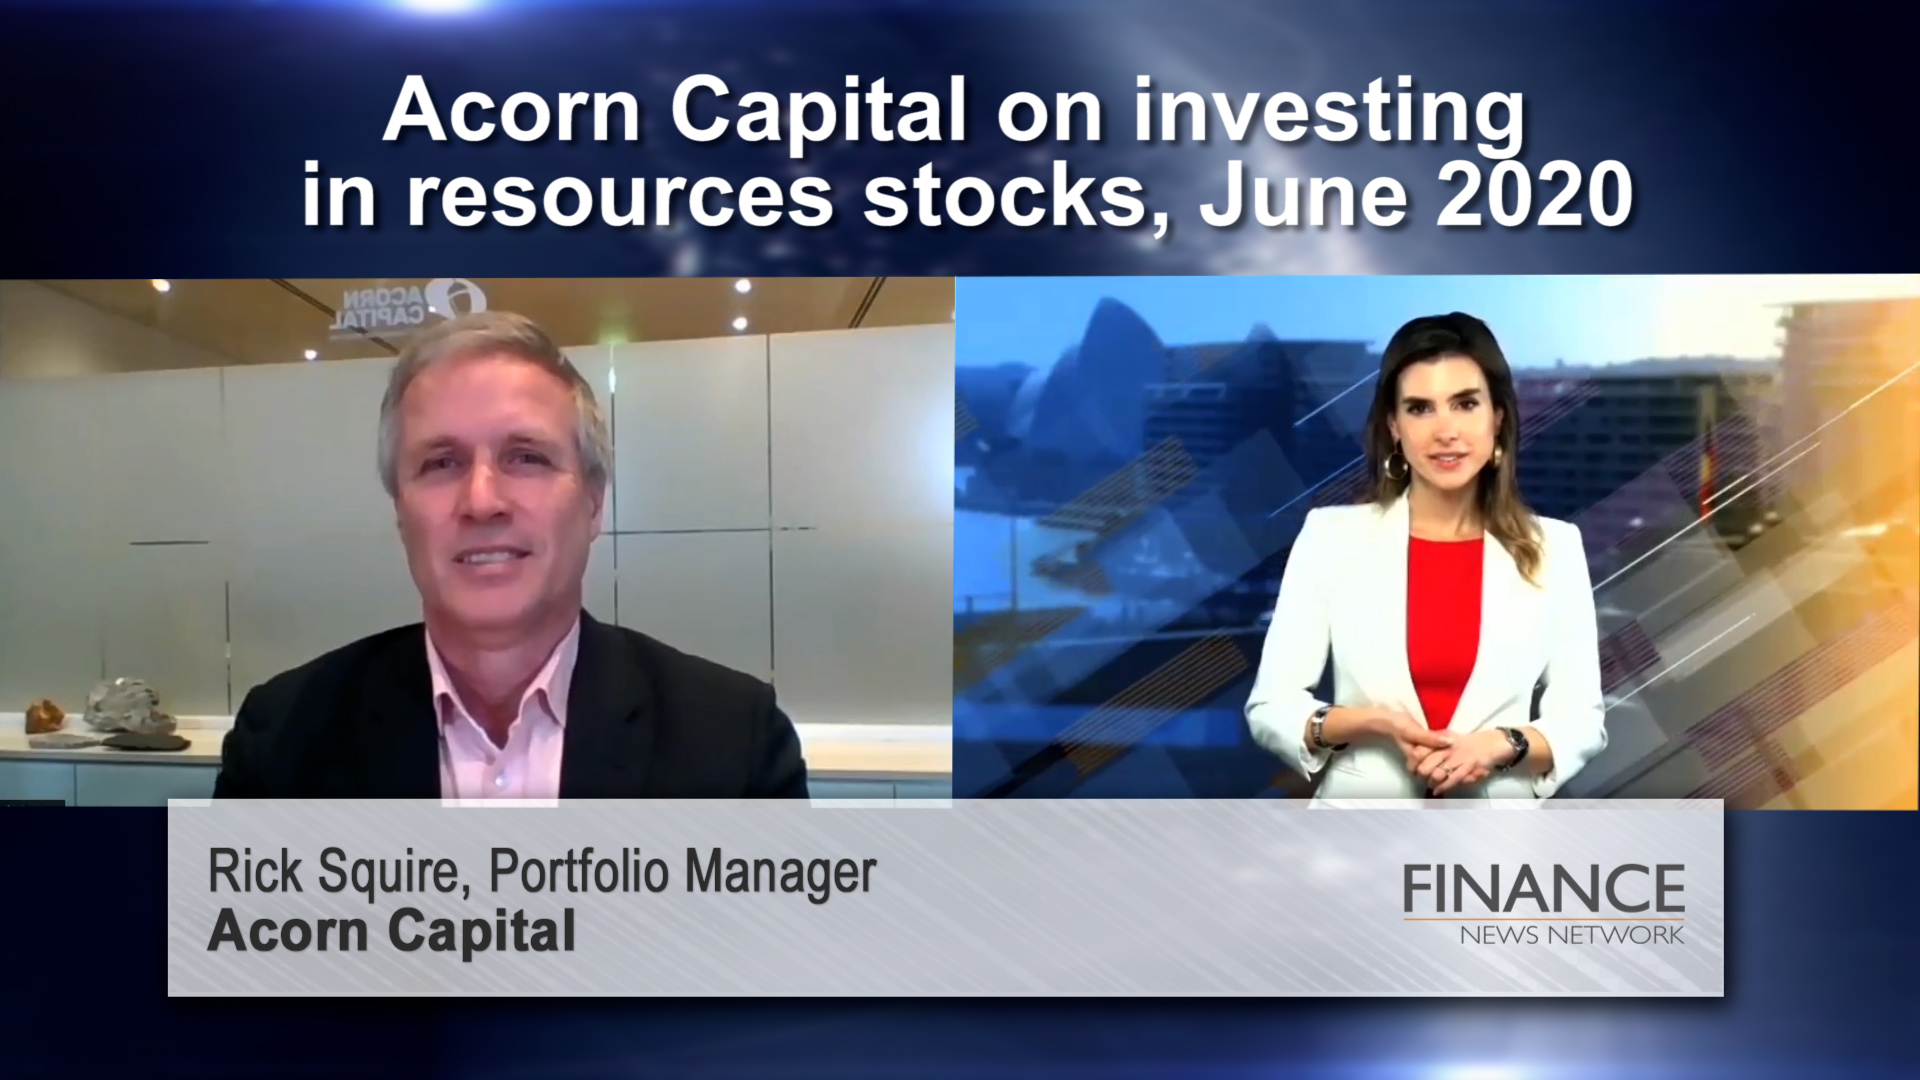 Acorn Capital on investing in resources stocks